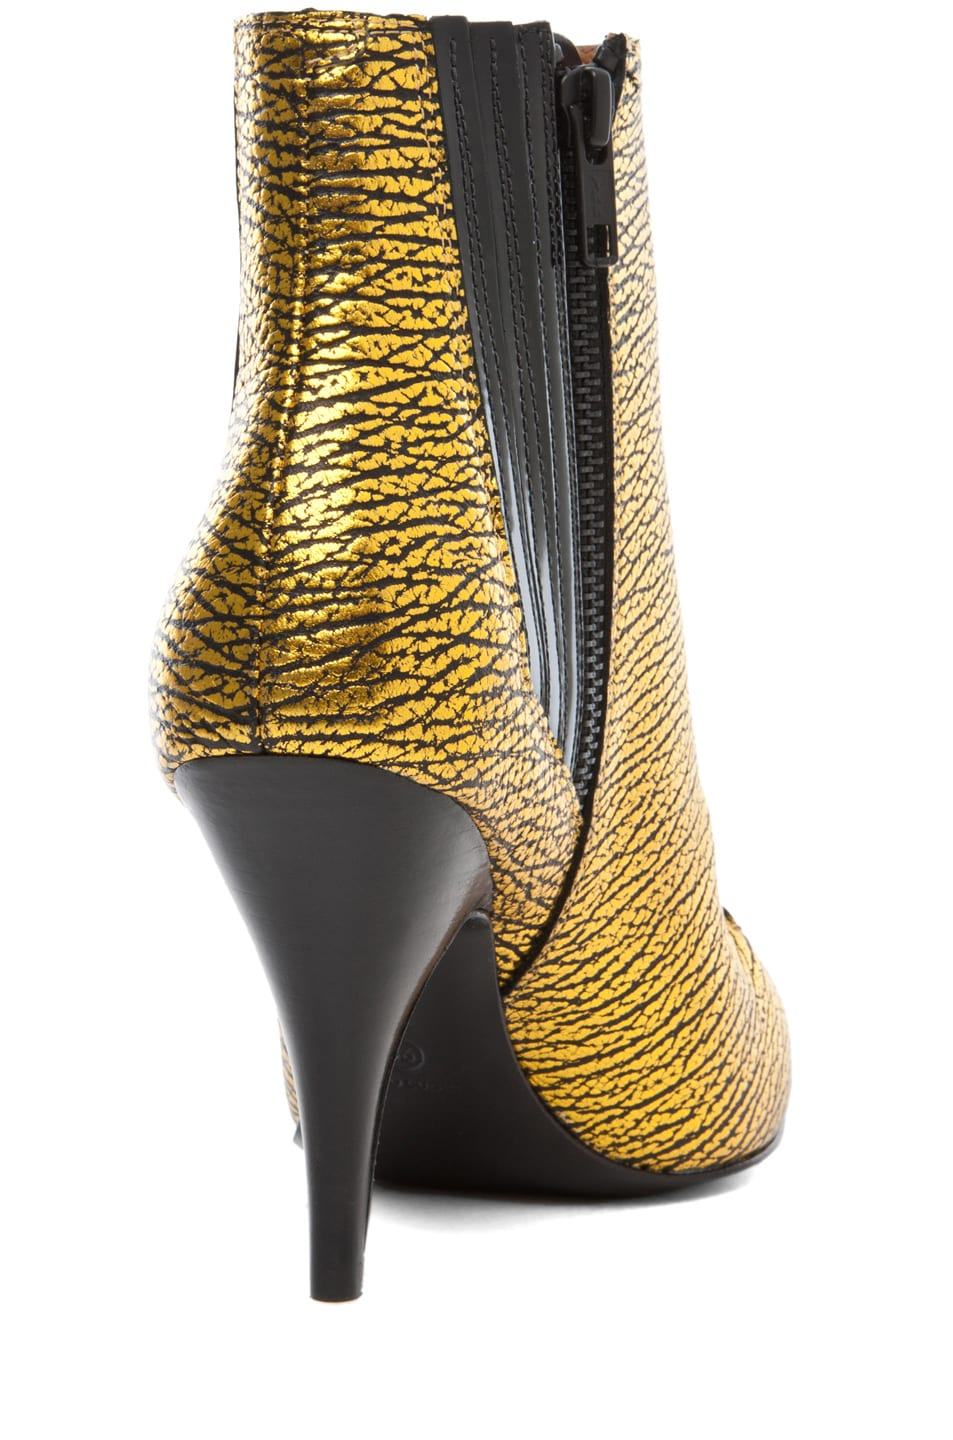 Image 3 of 3.1 phillip lim Delia Bootie in Yellow Gold